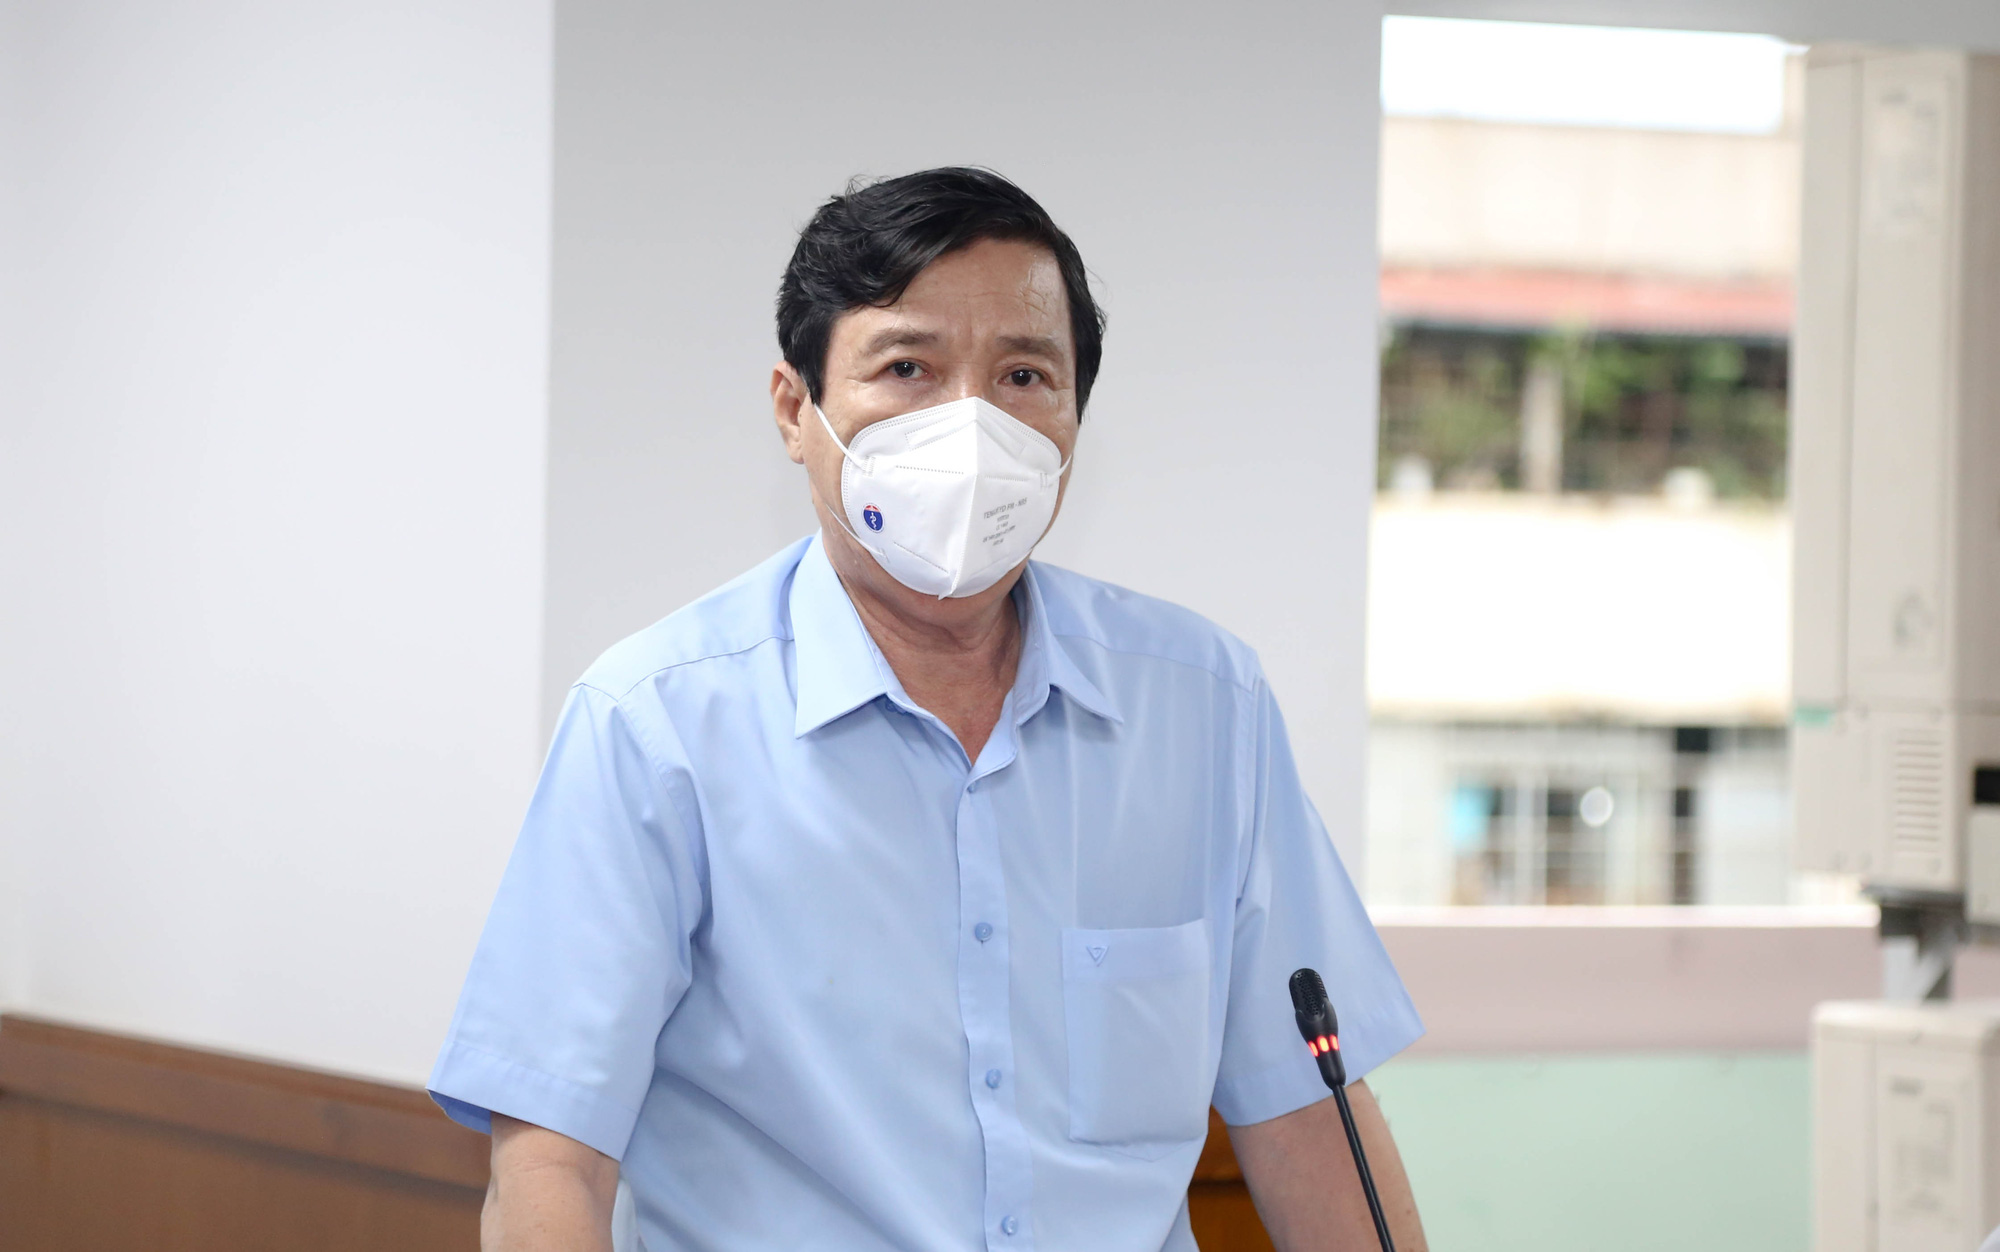 6,000 out of 170,000 samples have positive rapid coronavirus test result in Ho Chi Minh City